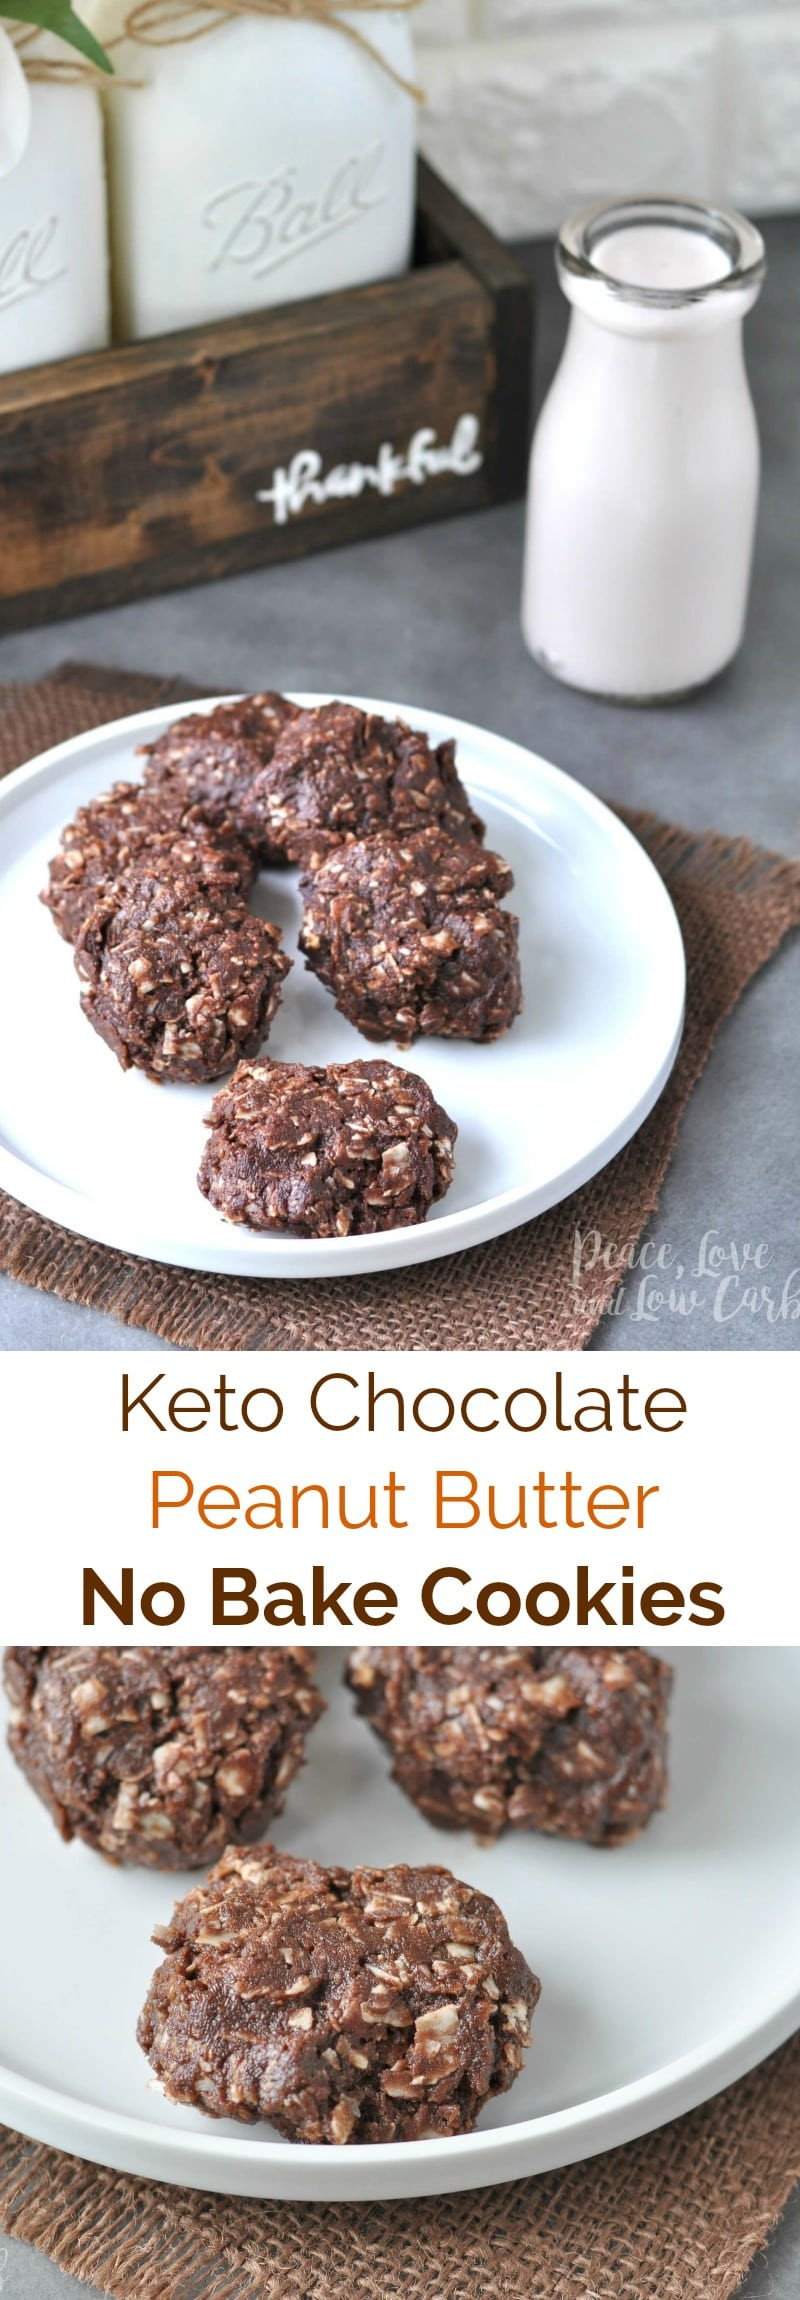 Peanut Butter Keto Diet  Chocolate Peanut Butter Low Carb Keto No Bake Cookies